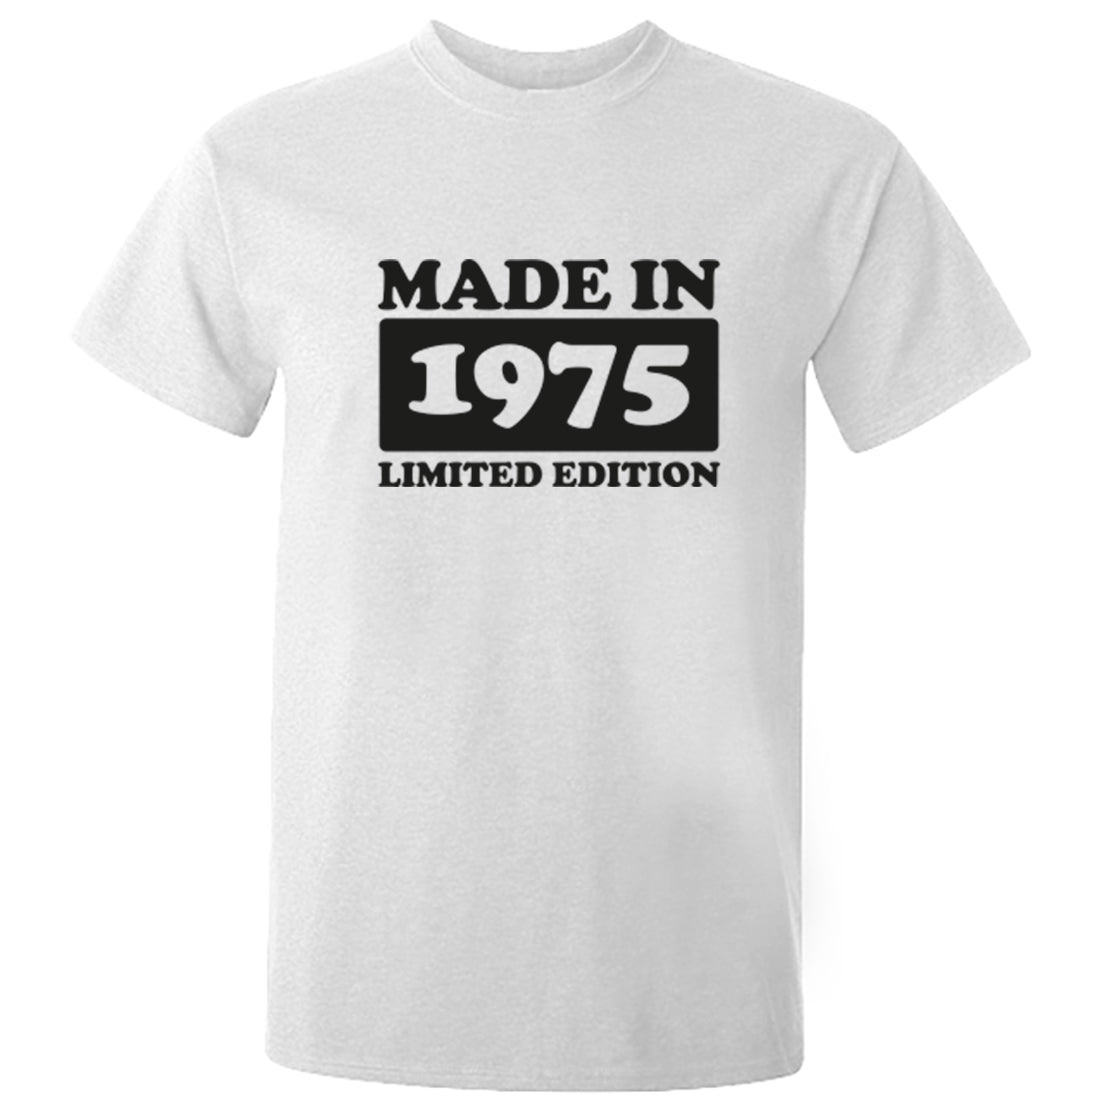 Made In 1975 Limited Edition Unisex Fit T-Shirt K1932 - Illustrated Identity Ltd.